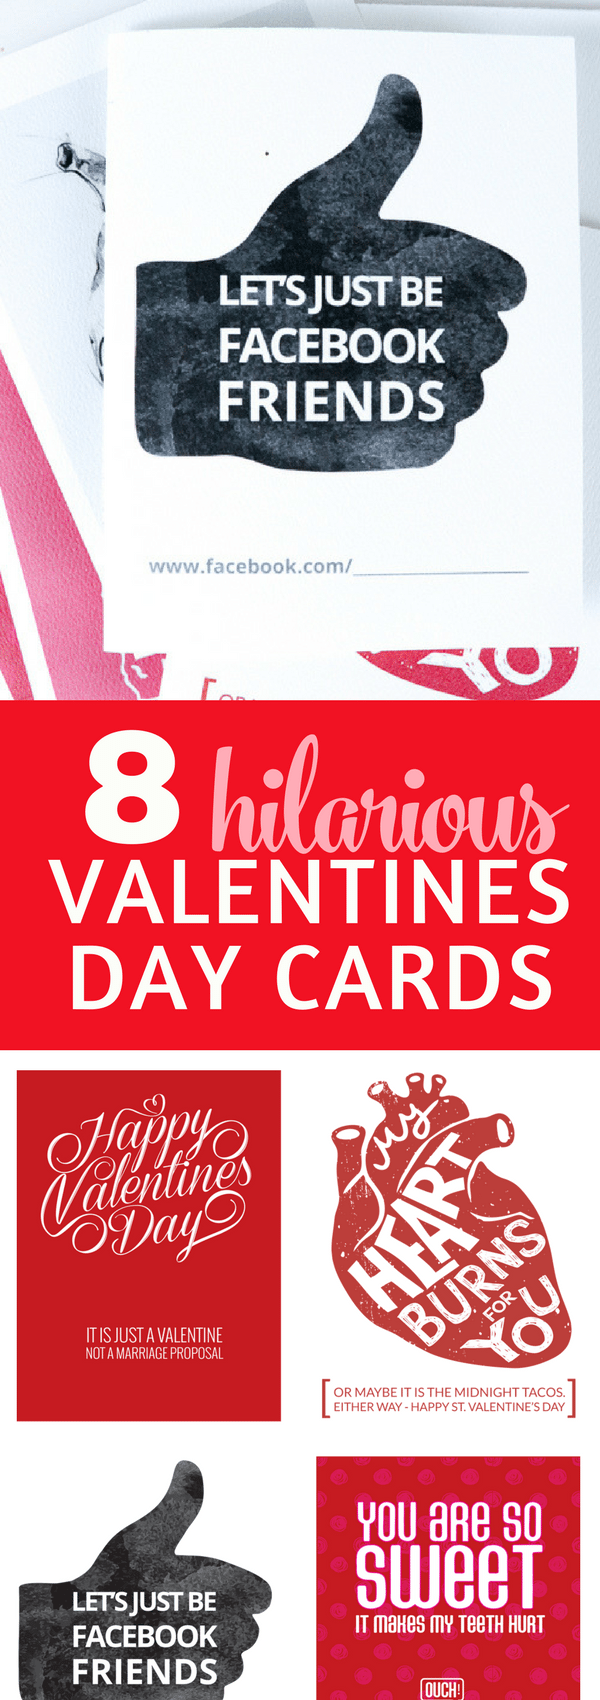 8 Funny Valentines Ideas you will LOVE with Free Printables. Give humor as your Valentines gift. Who doesn't love a good laugh? #valentinesideas #valentinescards #valentinesdaydecor